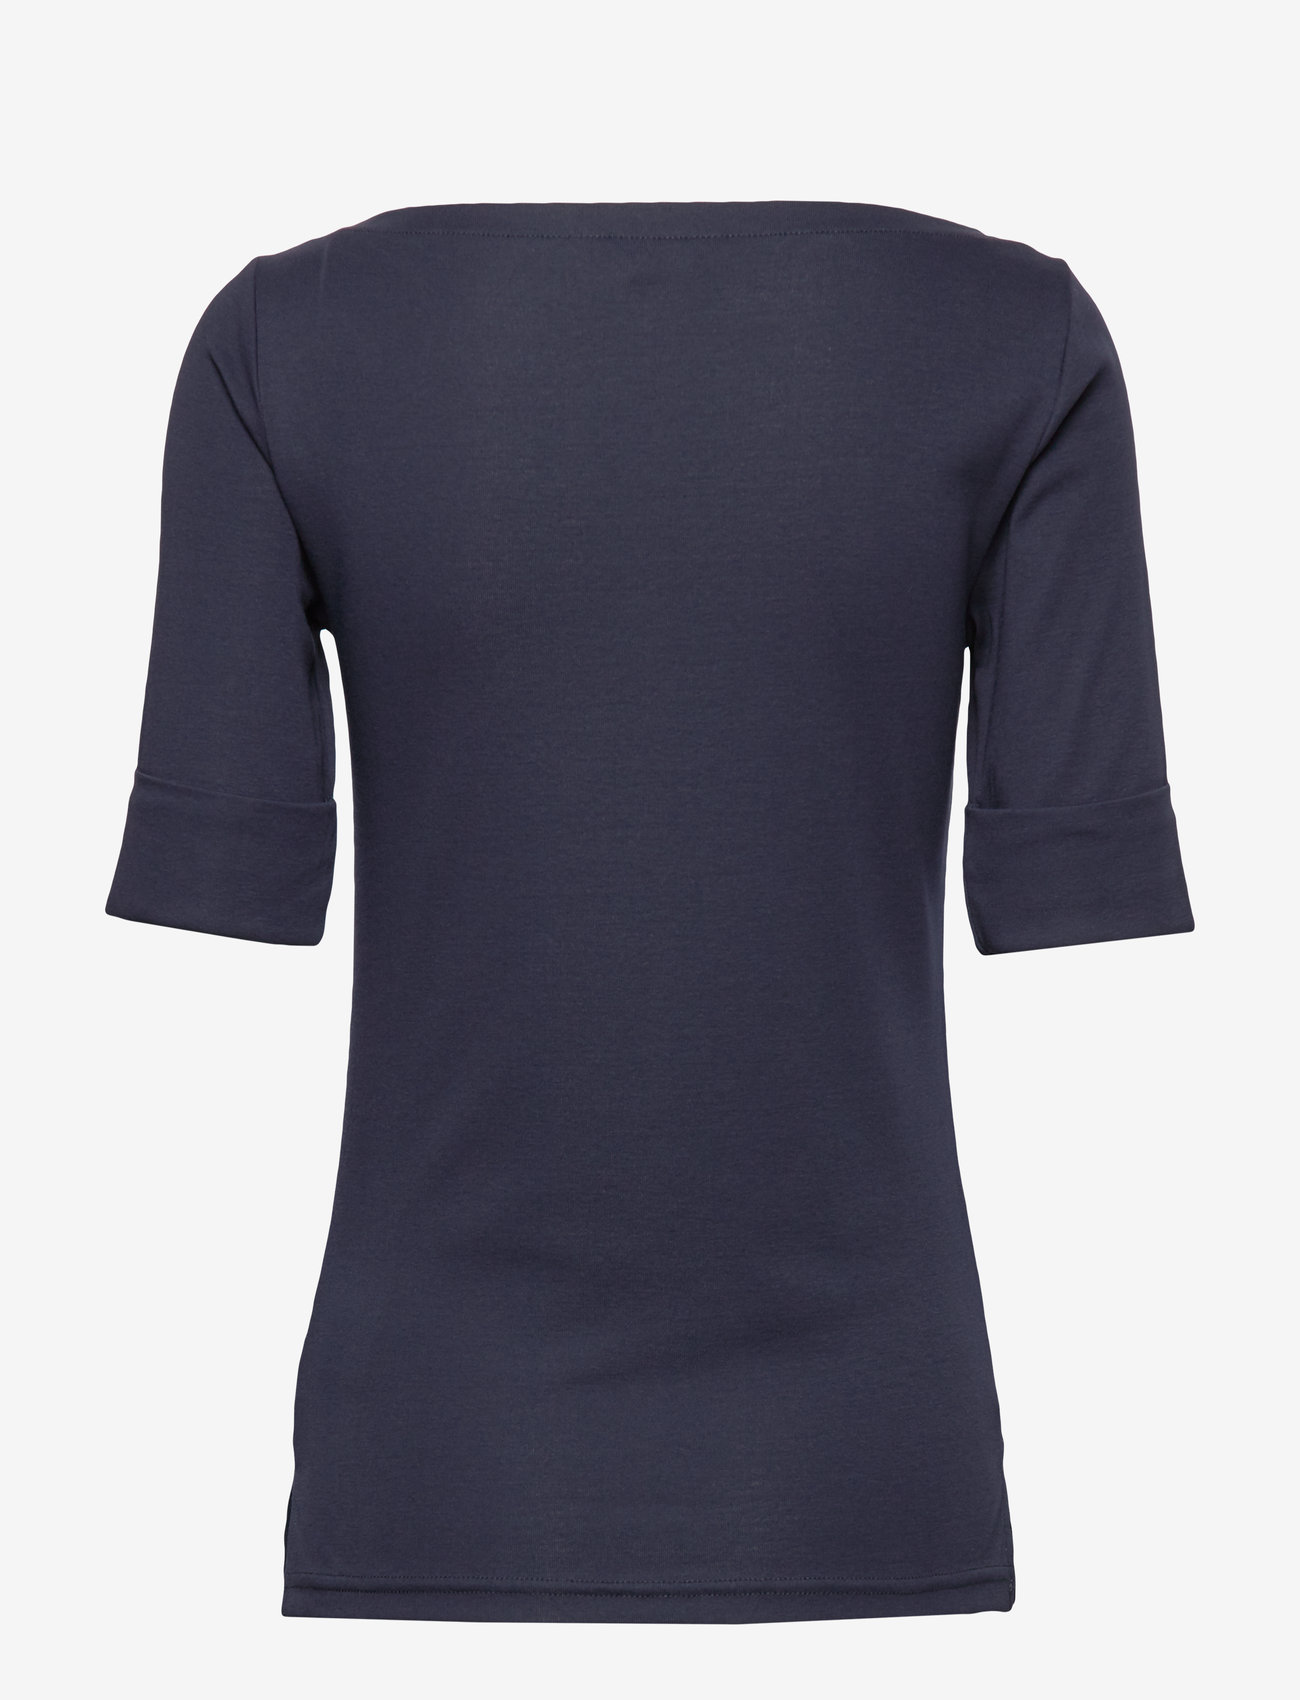 Lauren Ralph Lauren - Cotton Boatneck T-Shirt - t-shirts - lauren navy - 1